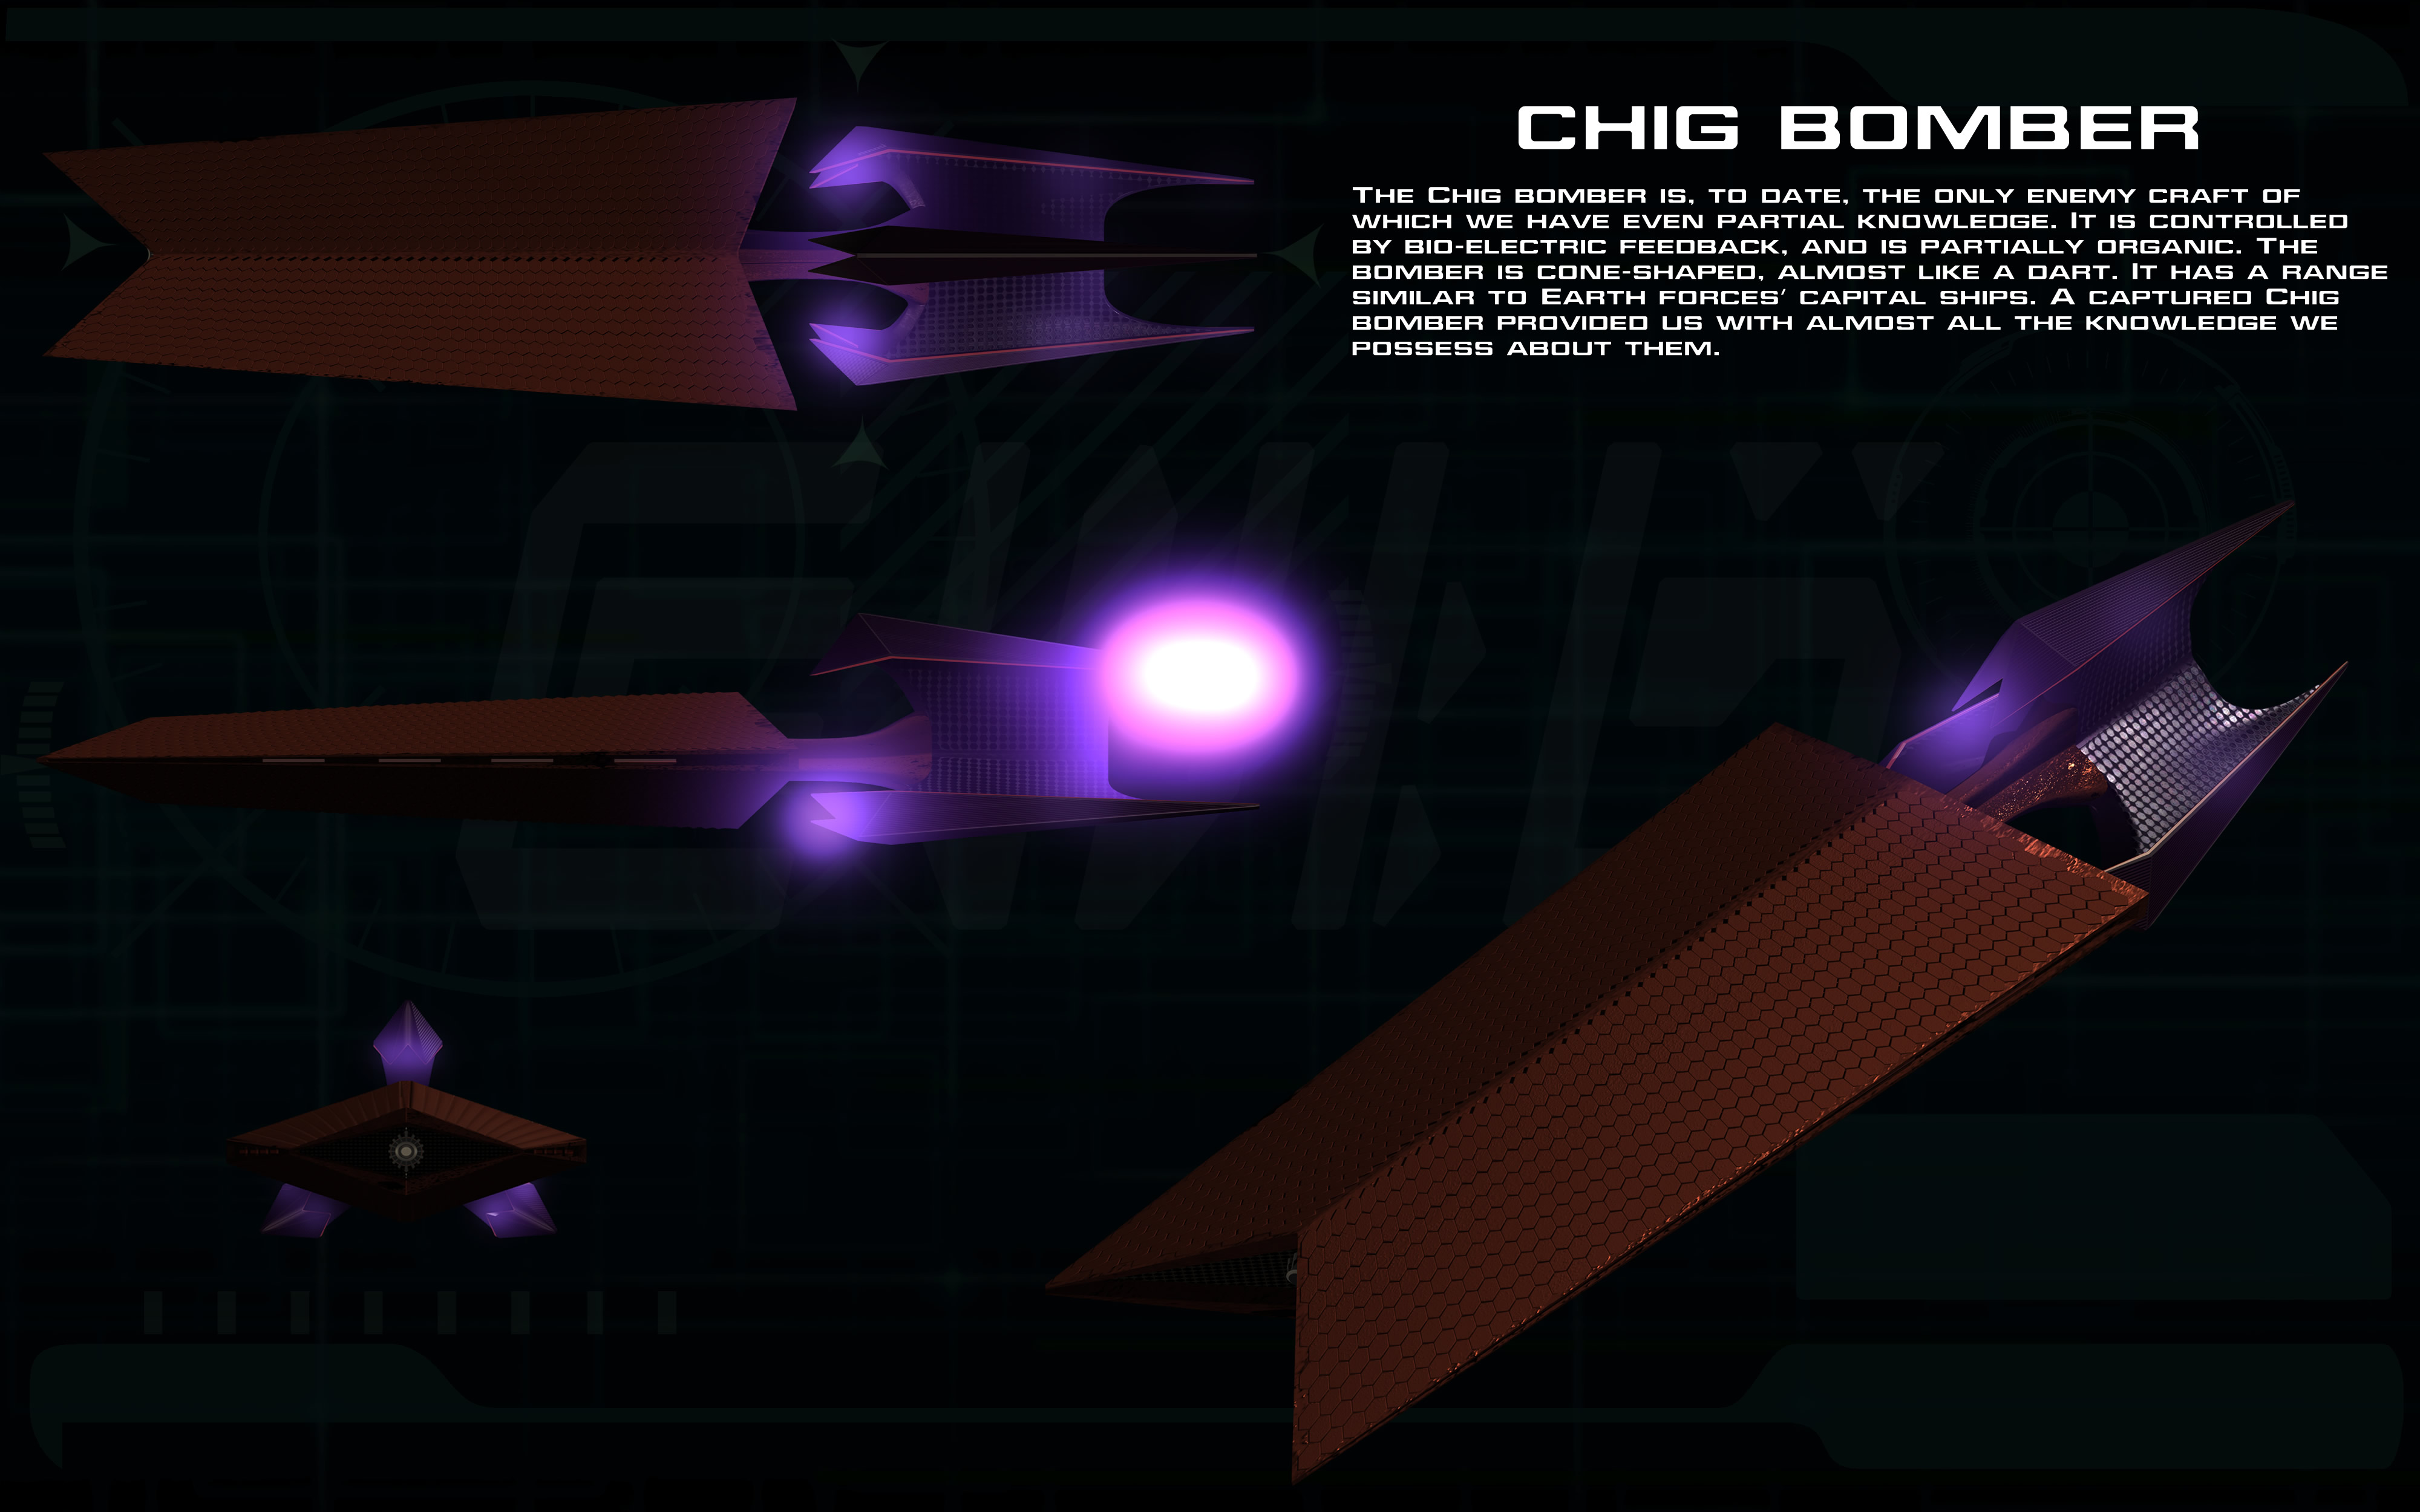 Chig Bomber ortho by unusualsuspex on DeviantArt